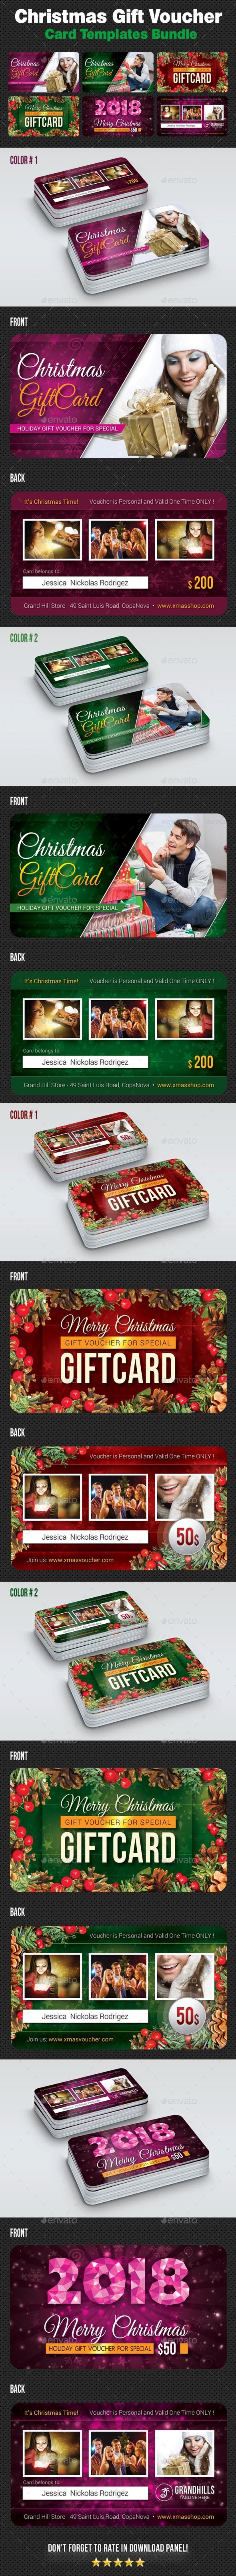 Christmas Gift Voucher Card Bundle - Christmas Greeting Cards